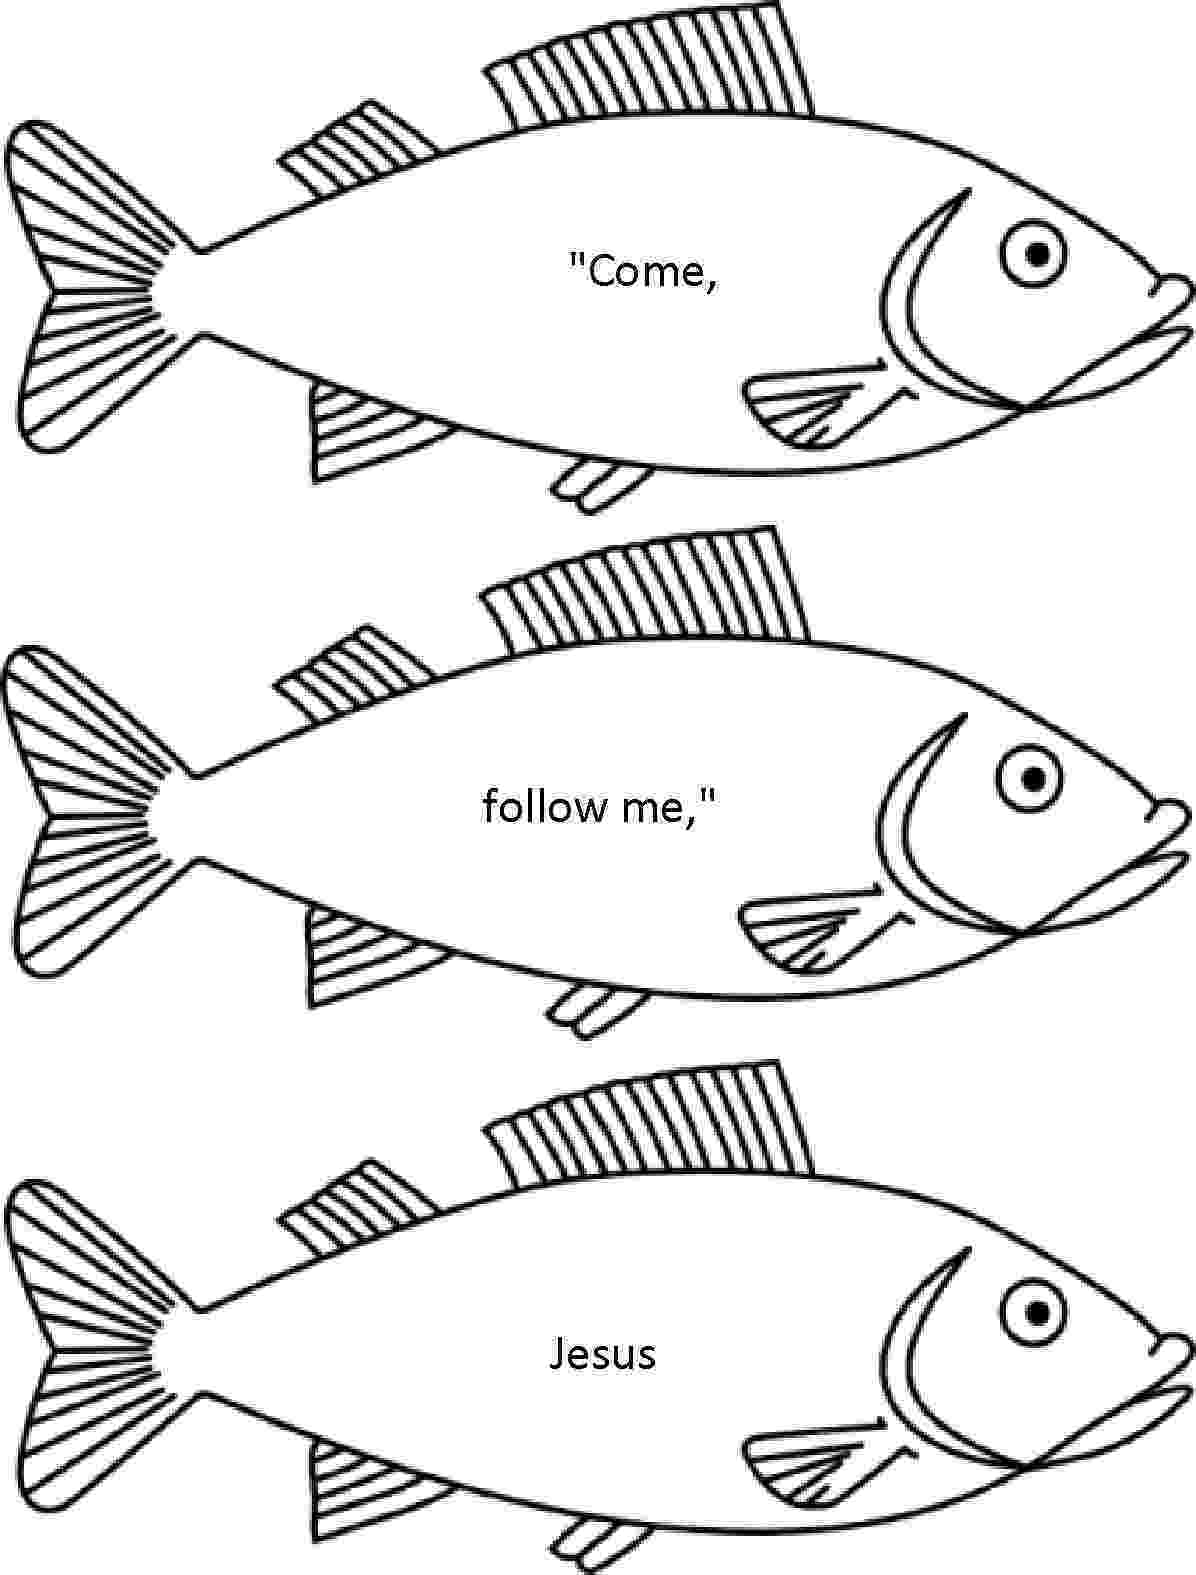 fishers of men coloring page fishers of men lesson kathy hutto page fishers coloring of men